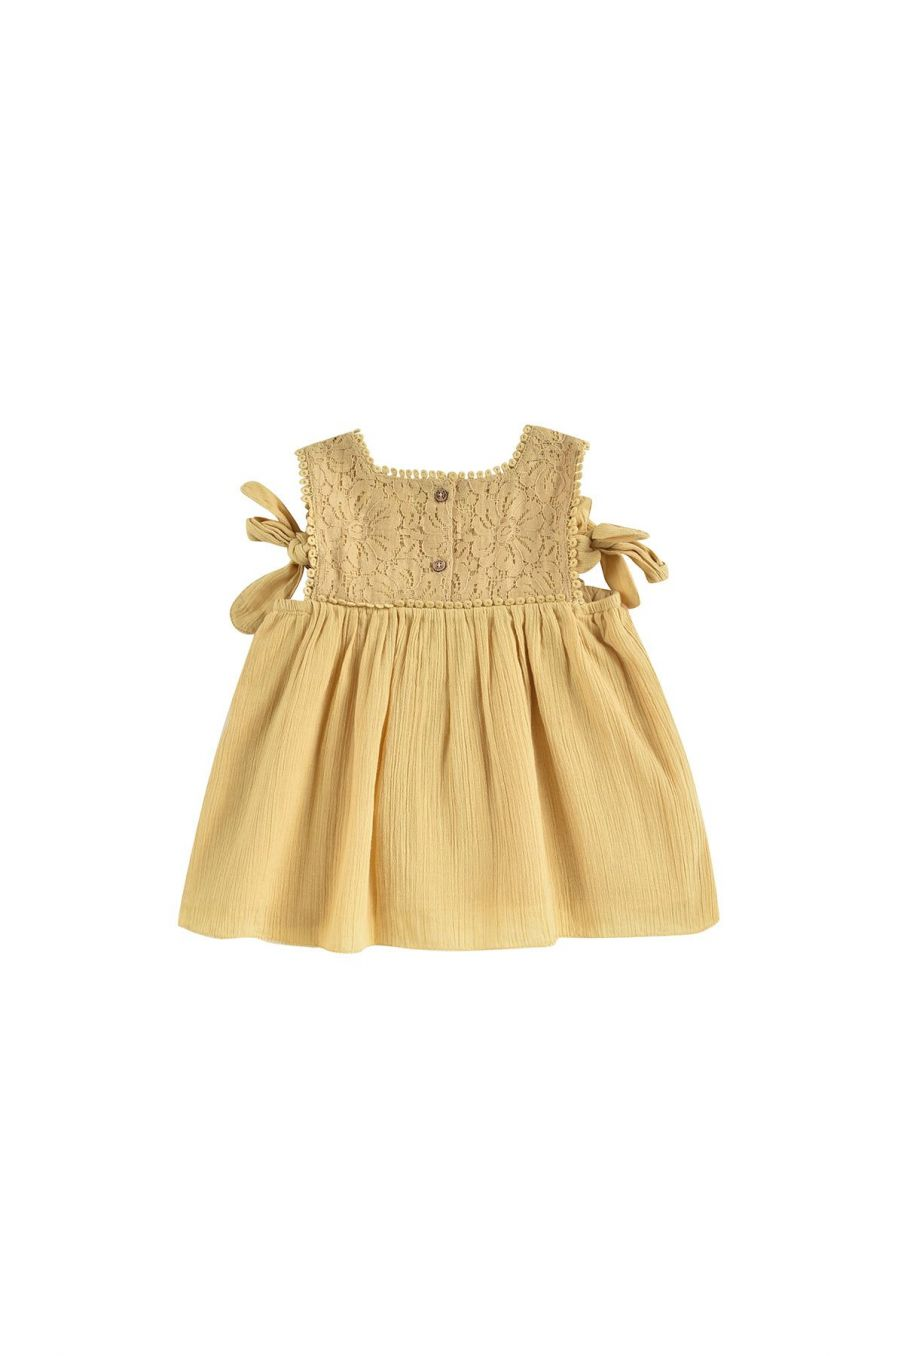 boheme chic vintage robe bébé fille paolina soft honey